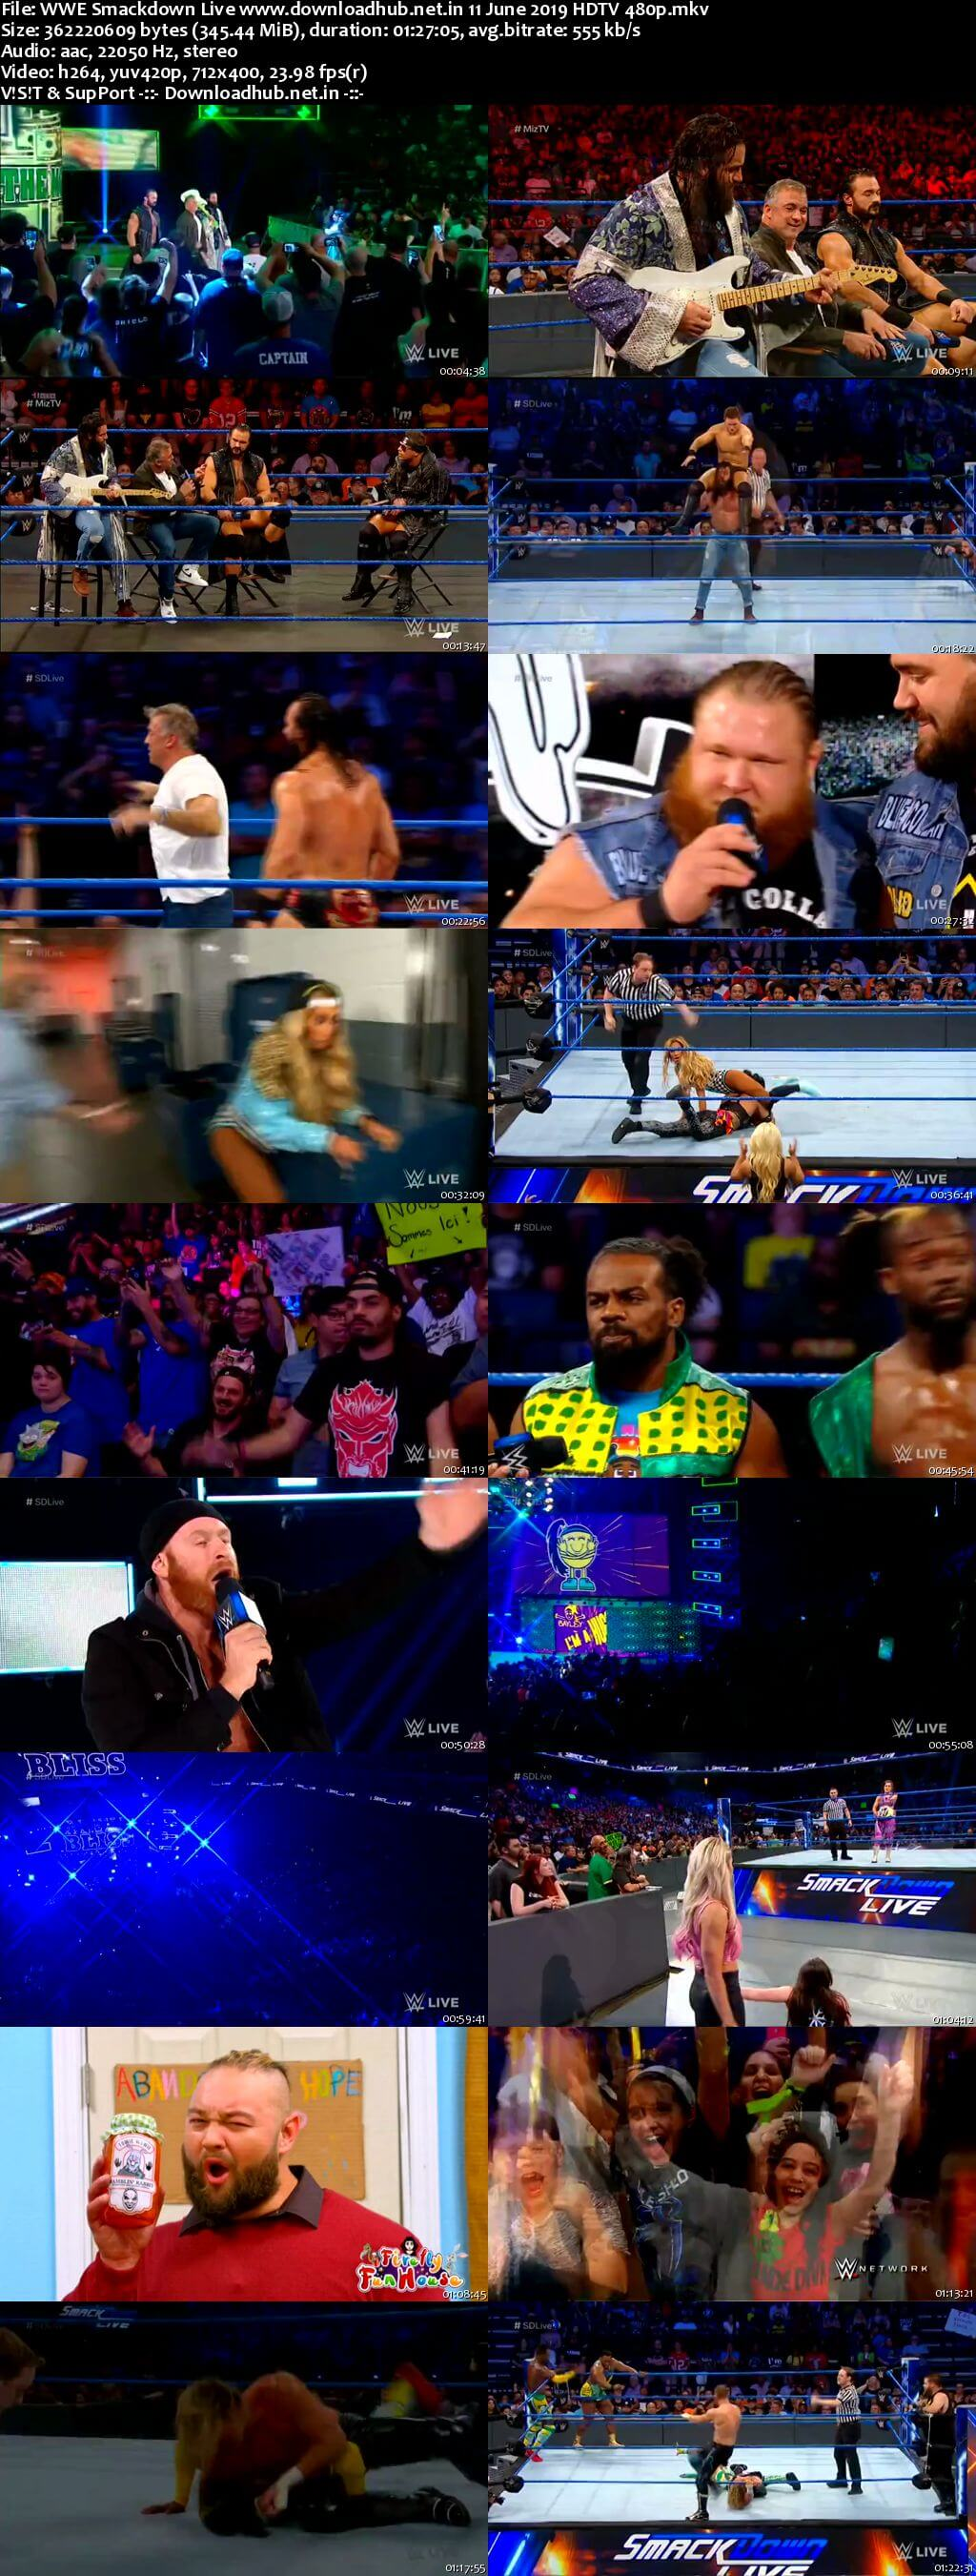 Download WWE Smackdown Live 11th June 2019